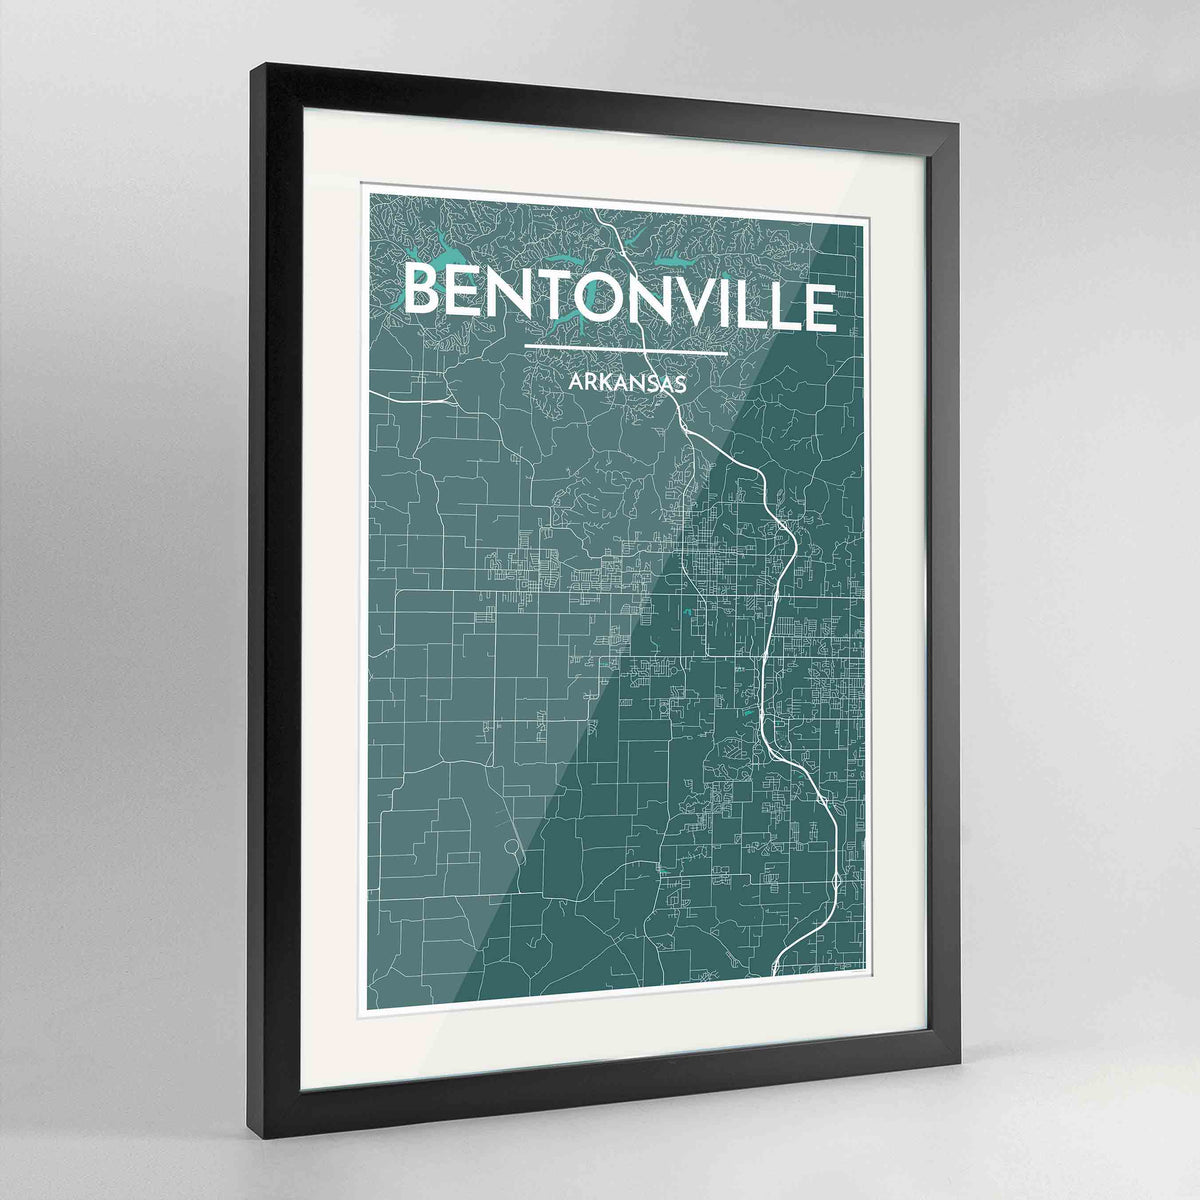 "Framed Bentonville Map Art Print 24x36"" Contemporary Black frame Point Two Design Group"